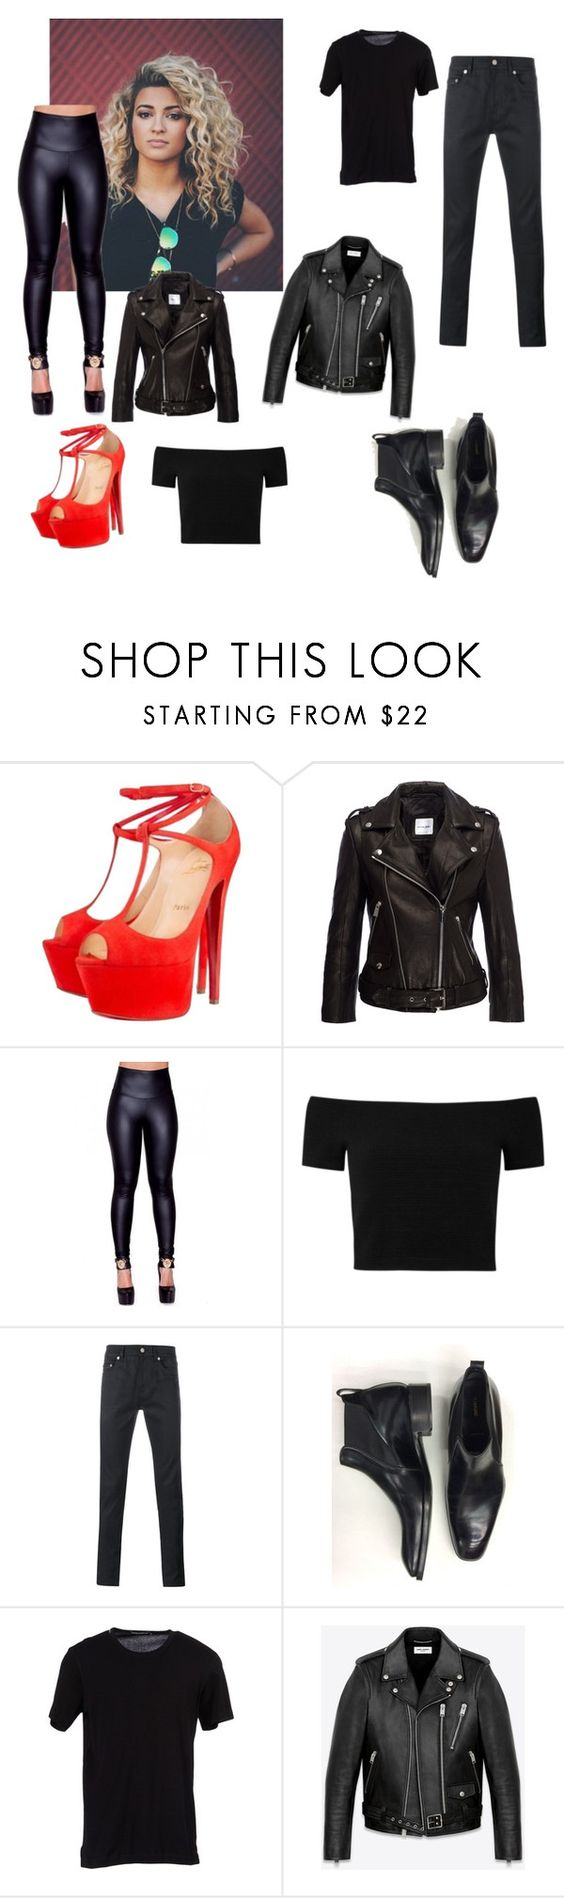 """""""Danny Zuko and Sandy costume"""" by mrs-eazy ❤ liked on Polyvore featuring Christian Louboutin, Alice + Olivia, Yves Saint Laurent, Tom Ford and Dolce&Gabbana"""